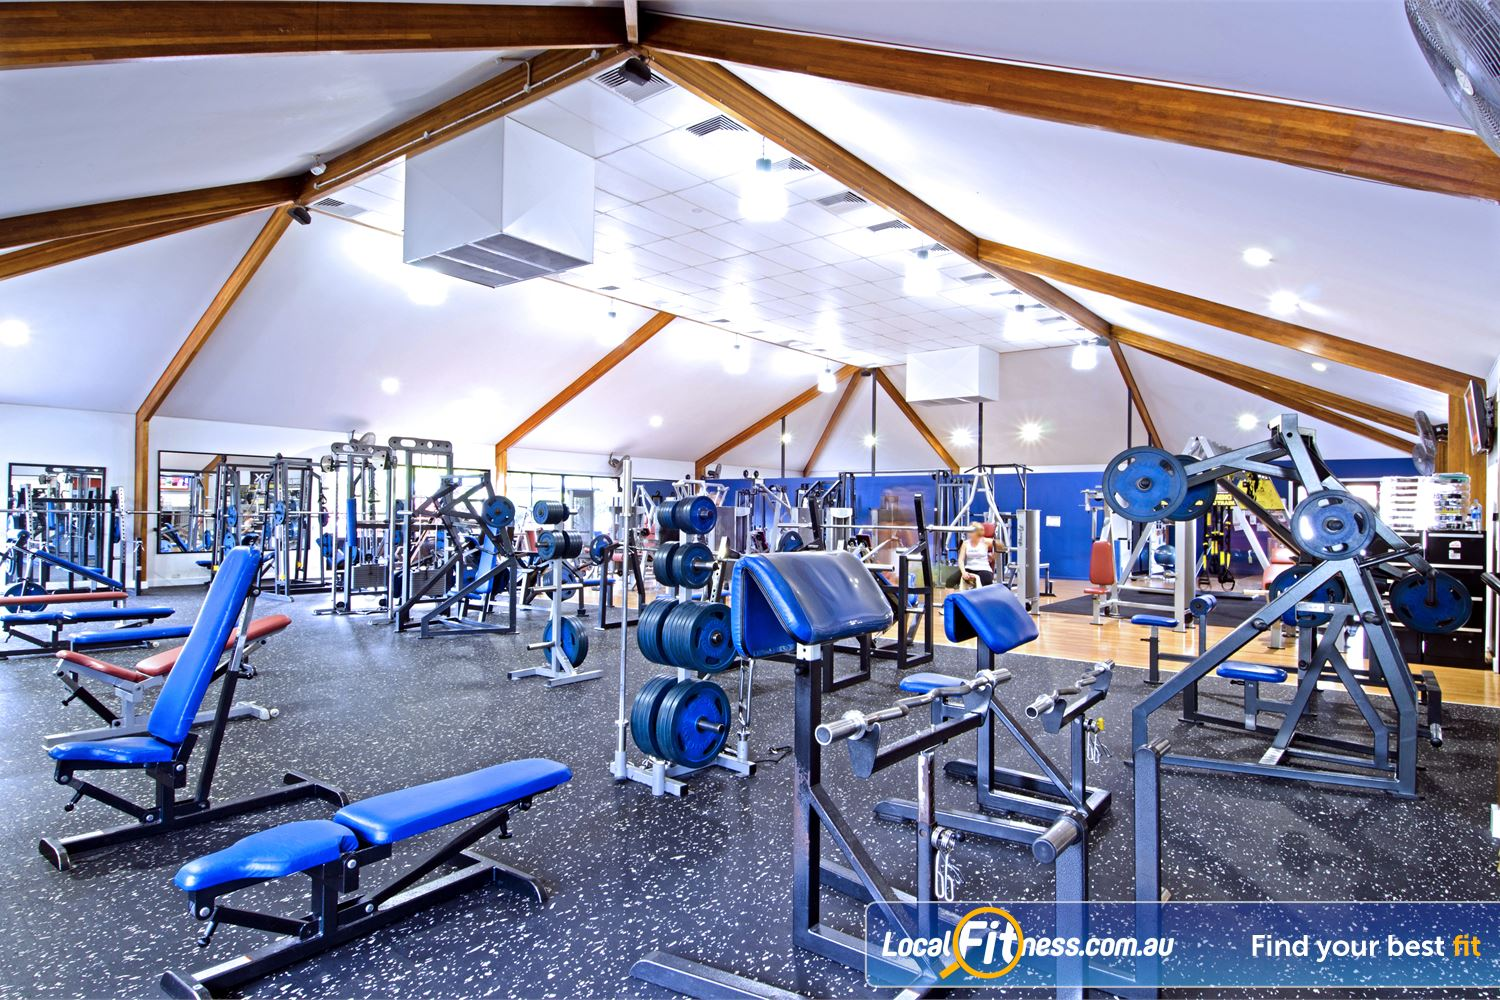 Goodlife Health Clubs Near Albany Creek Our spacious Carseldine gym features multiple benches and plate-loading equipment.